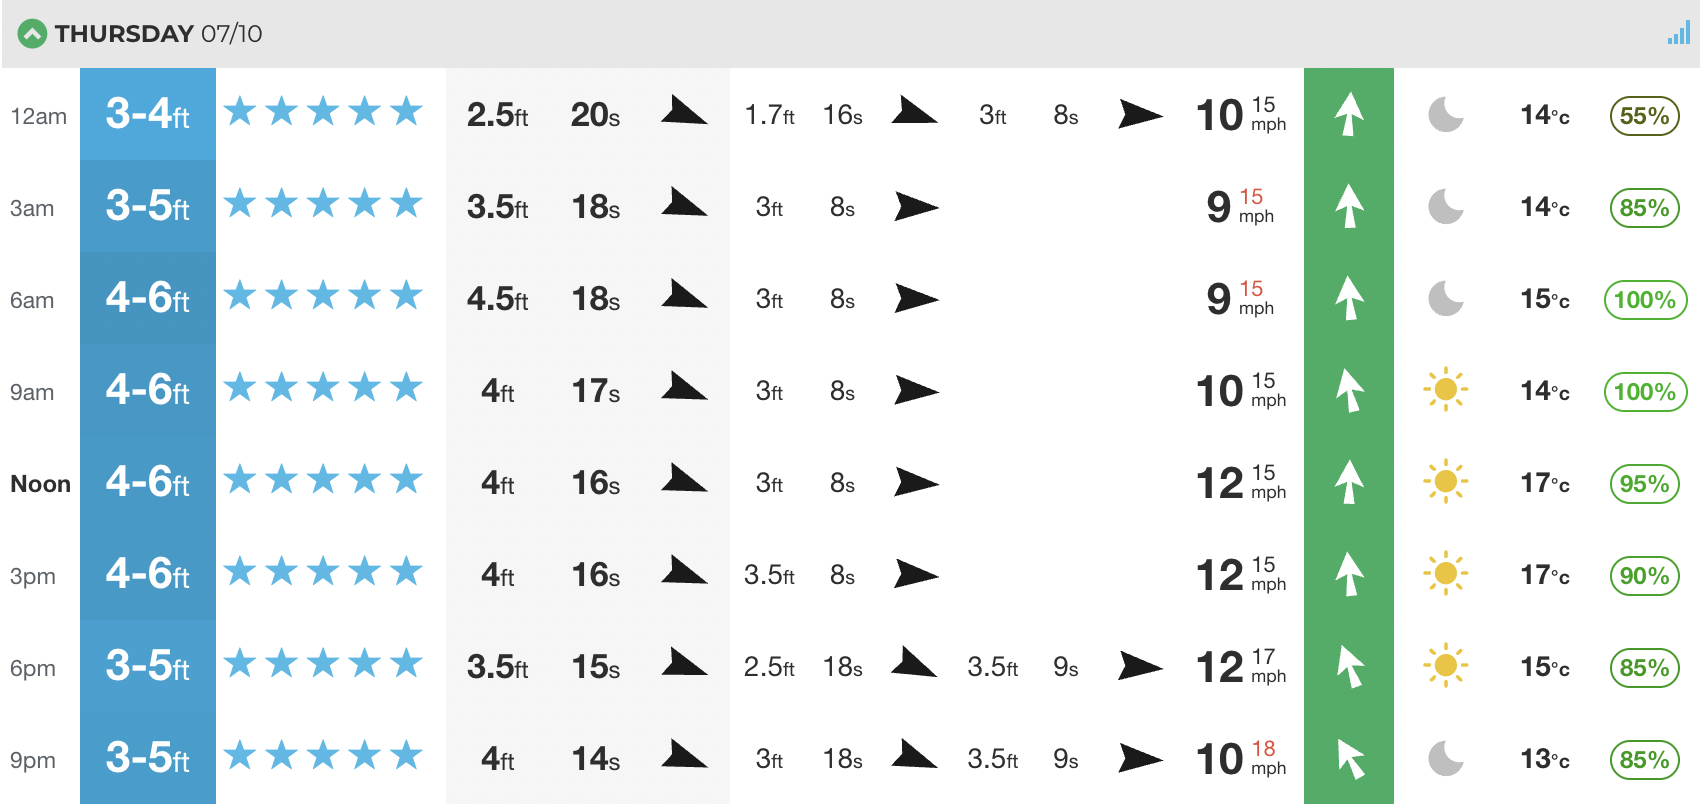 Our at-a-glance for the UK's Fistral beach on Thursday. As you can see, this could be a proper swell.